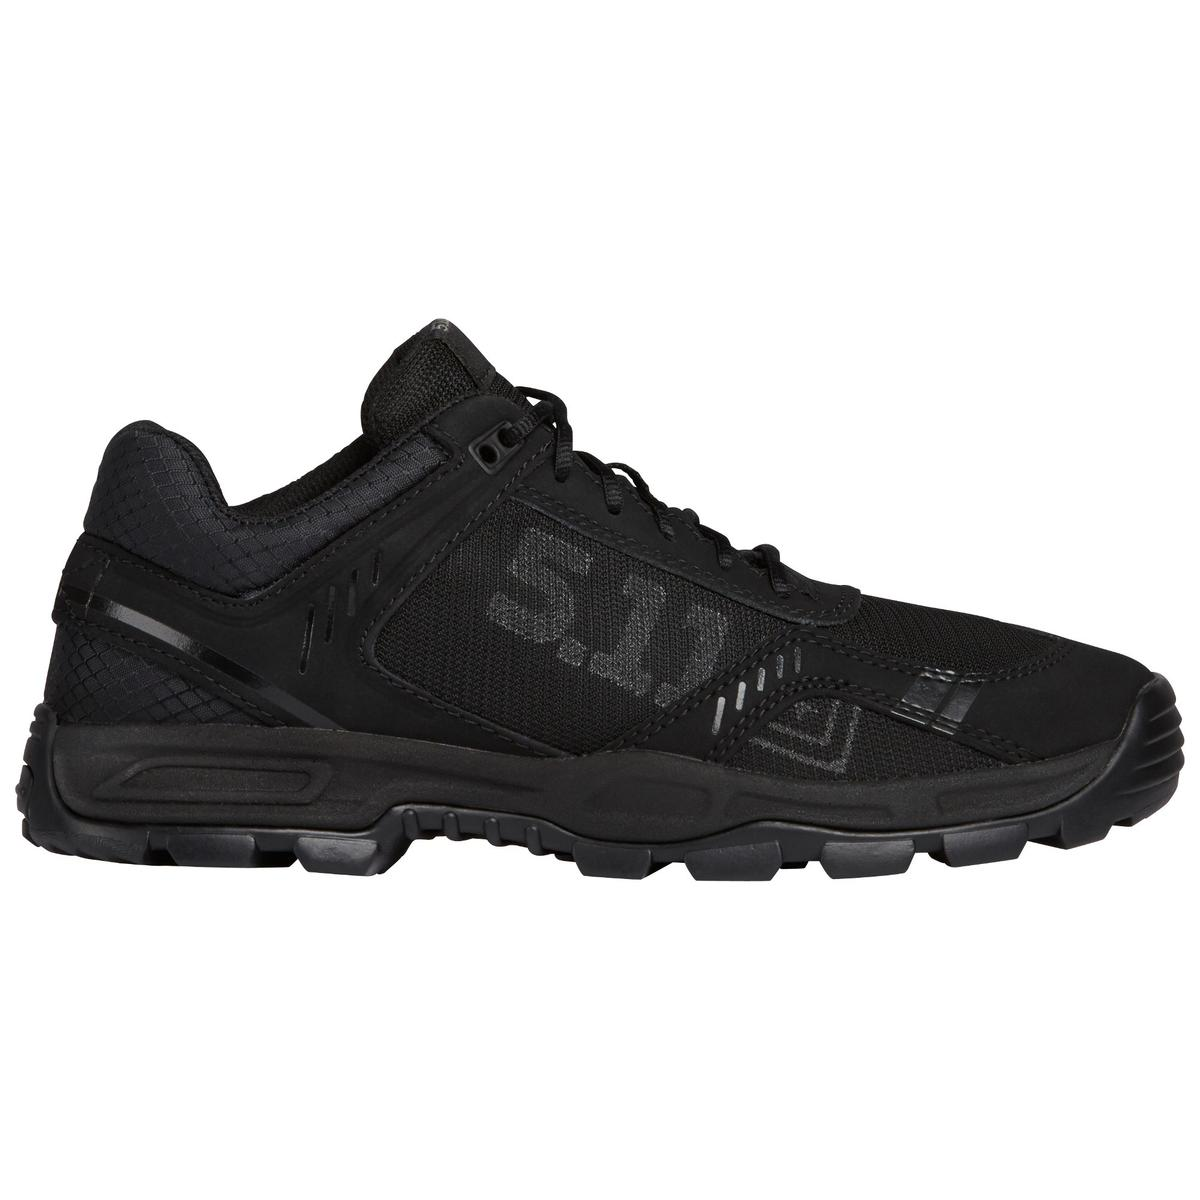 The Most Comfortable All Black Shoe